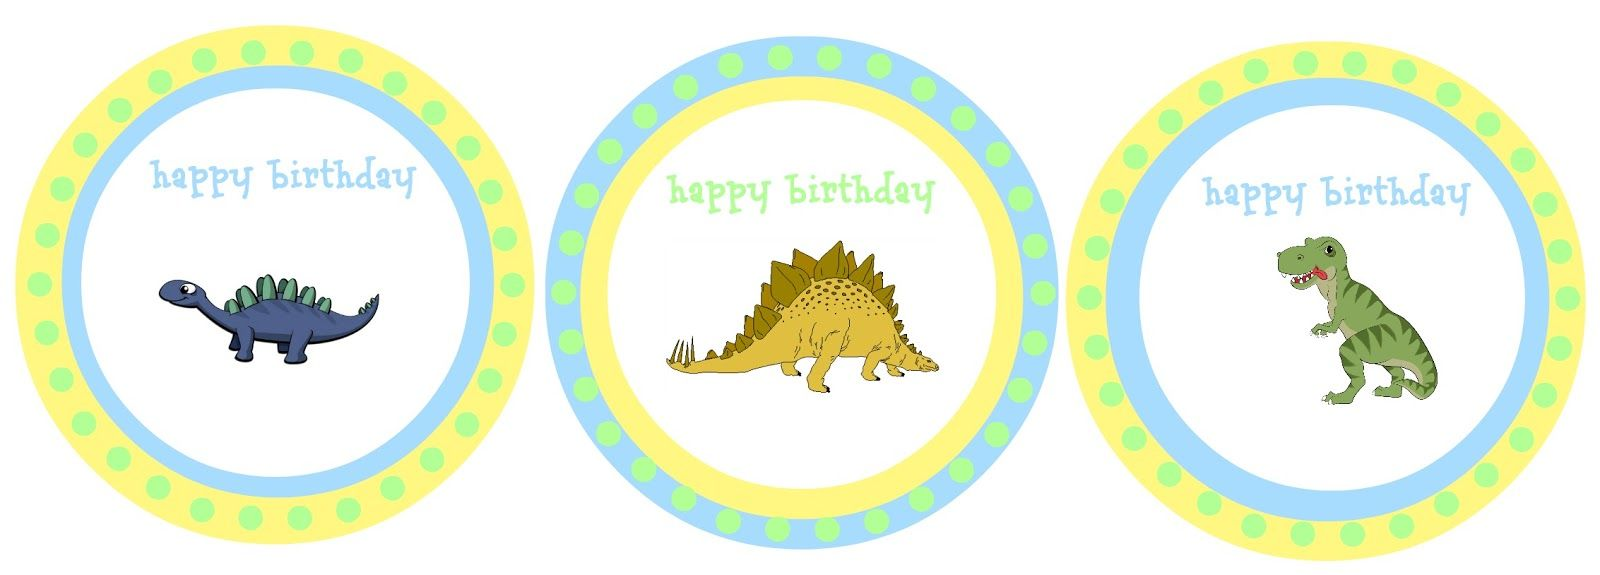 Party with dinosaurs Dinosaur themed birthday party Themed